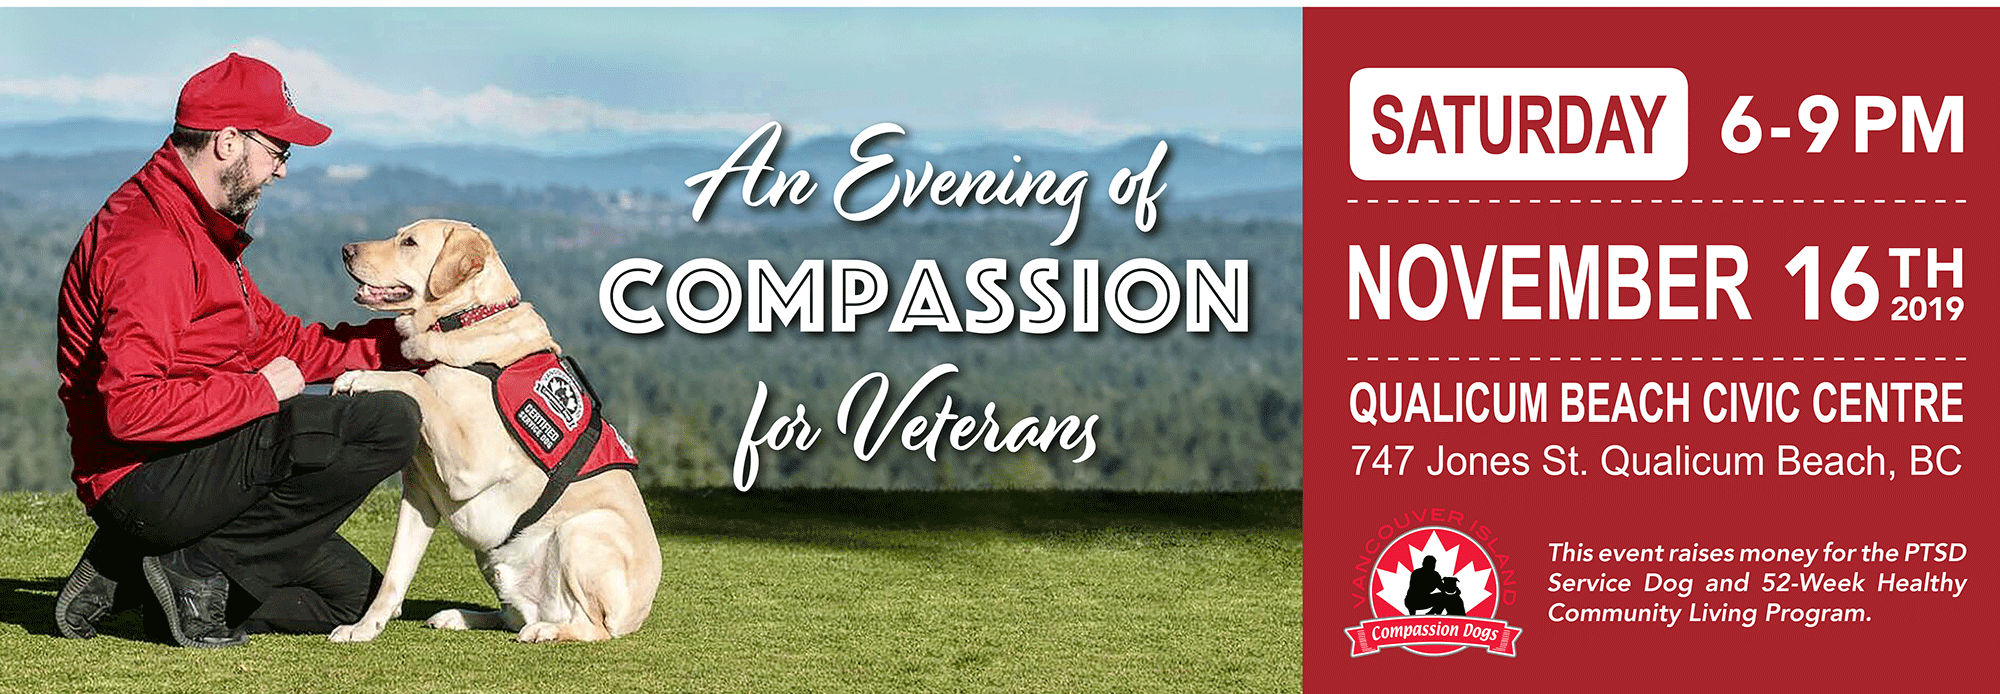 Join us for An Evening of Compassion for Veterans in support of our PTSD Service Dog Program